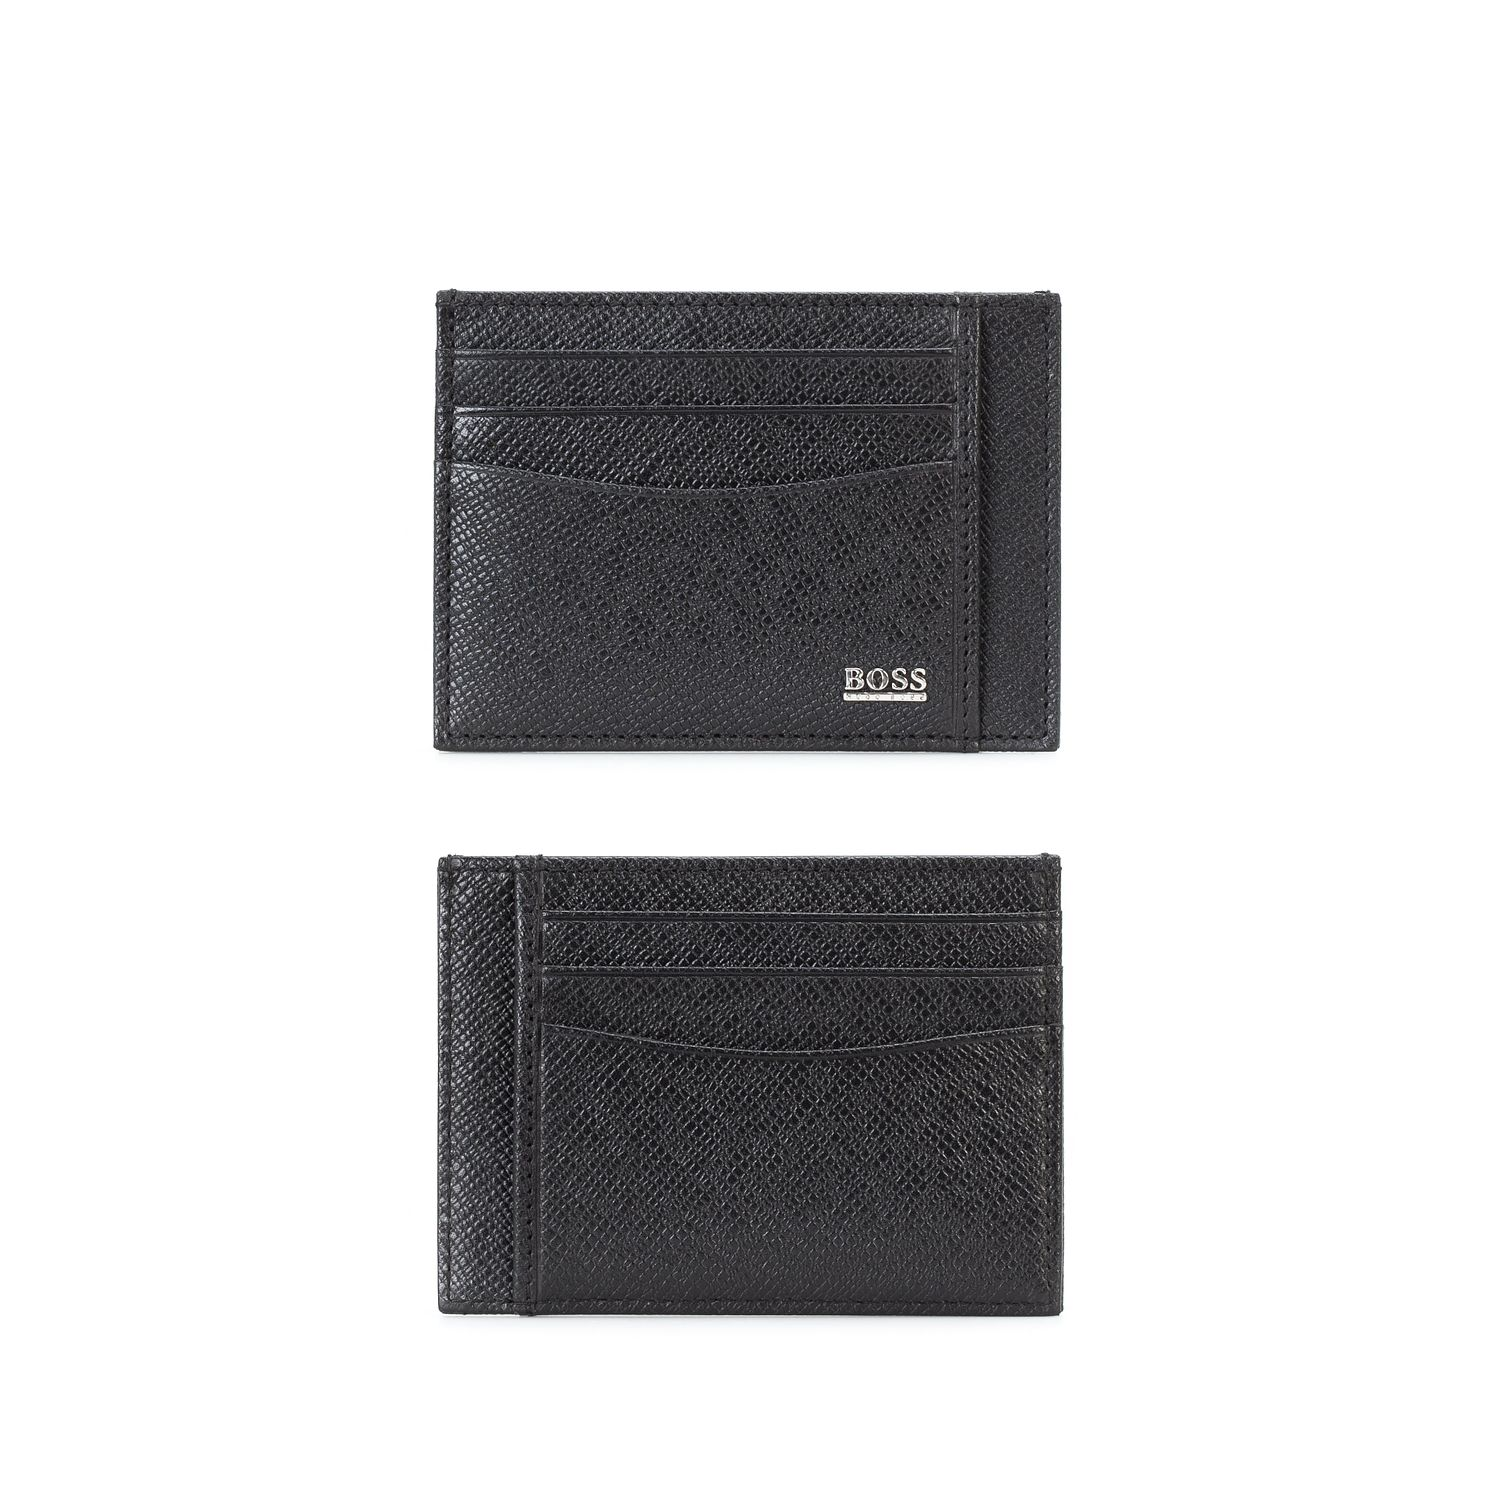 BOSS Signature Men's Black Leather Cardholder - Product number 1096761